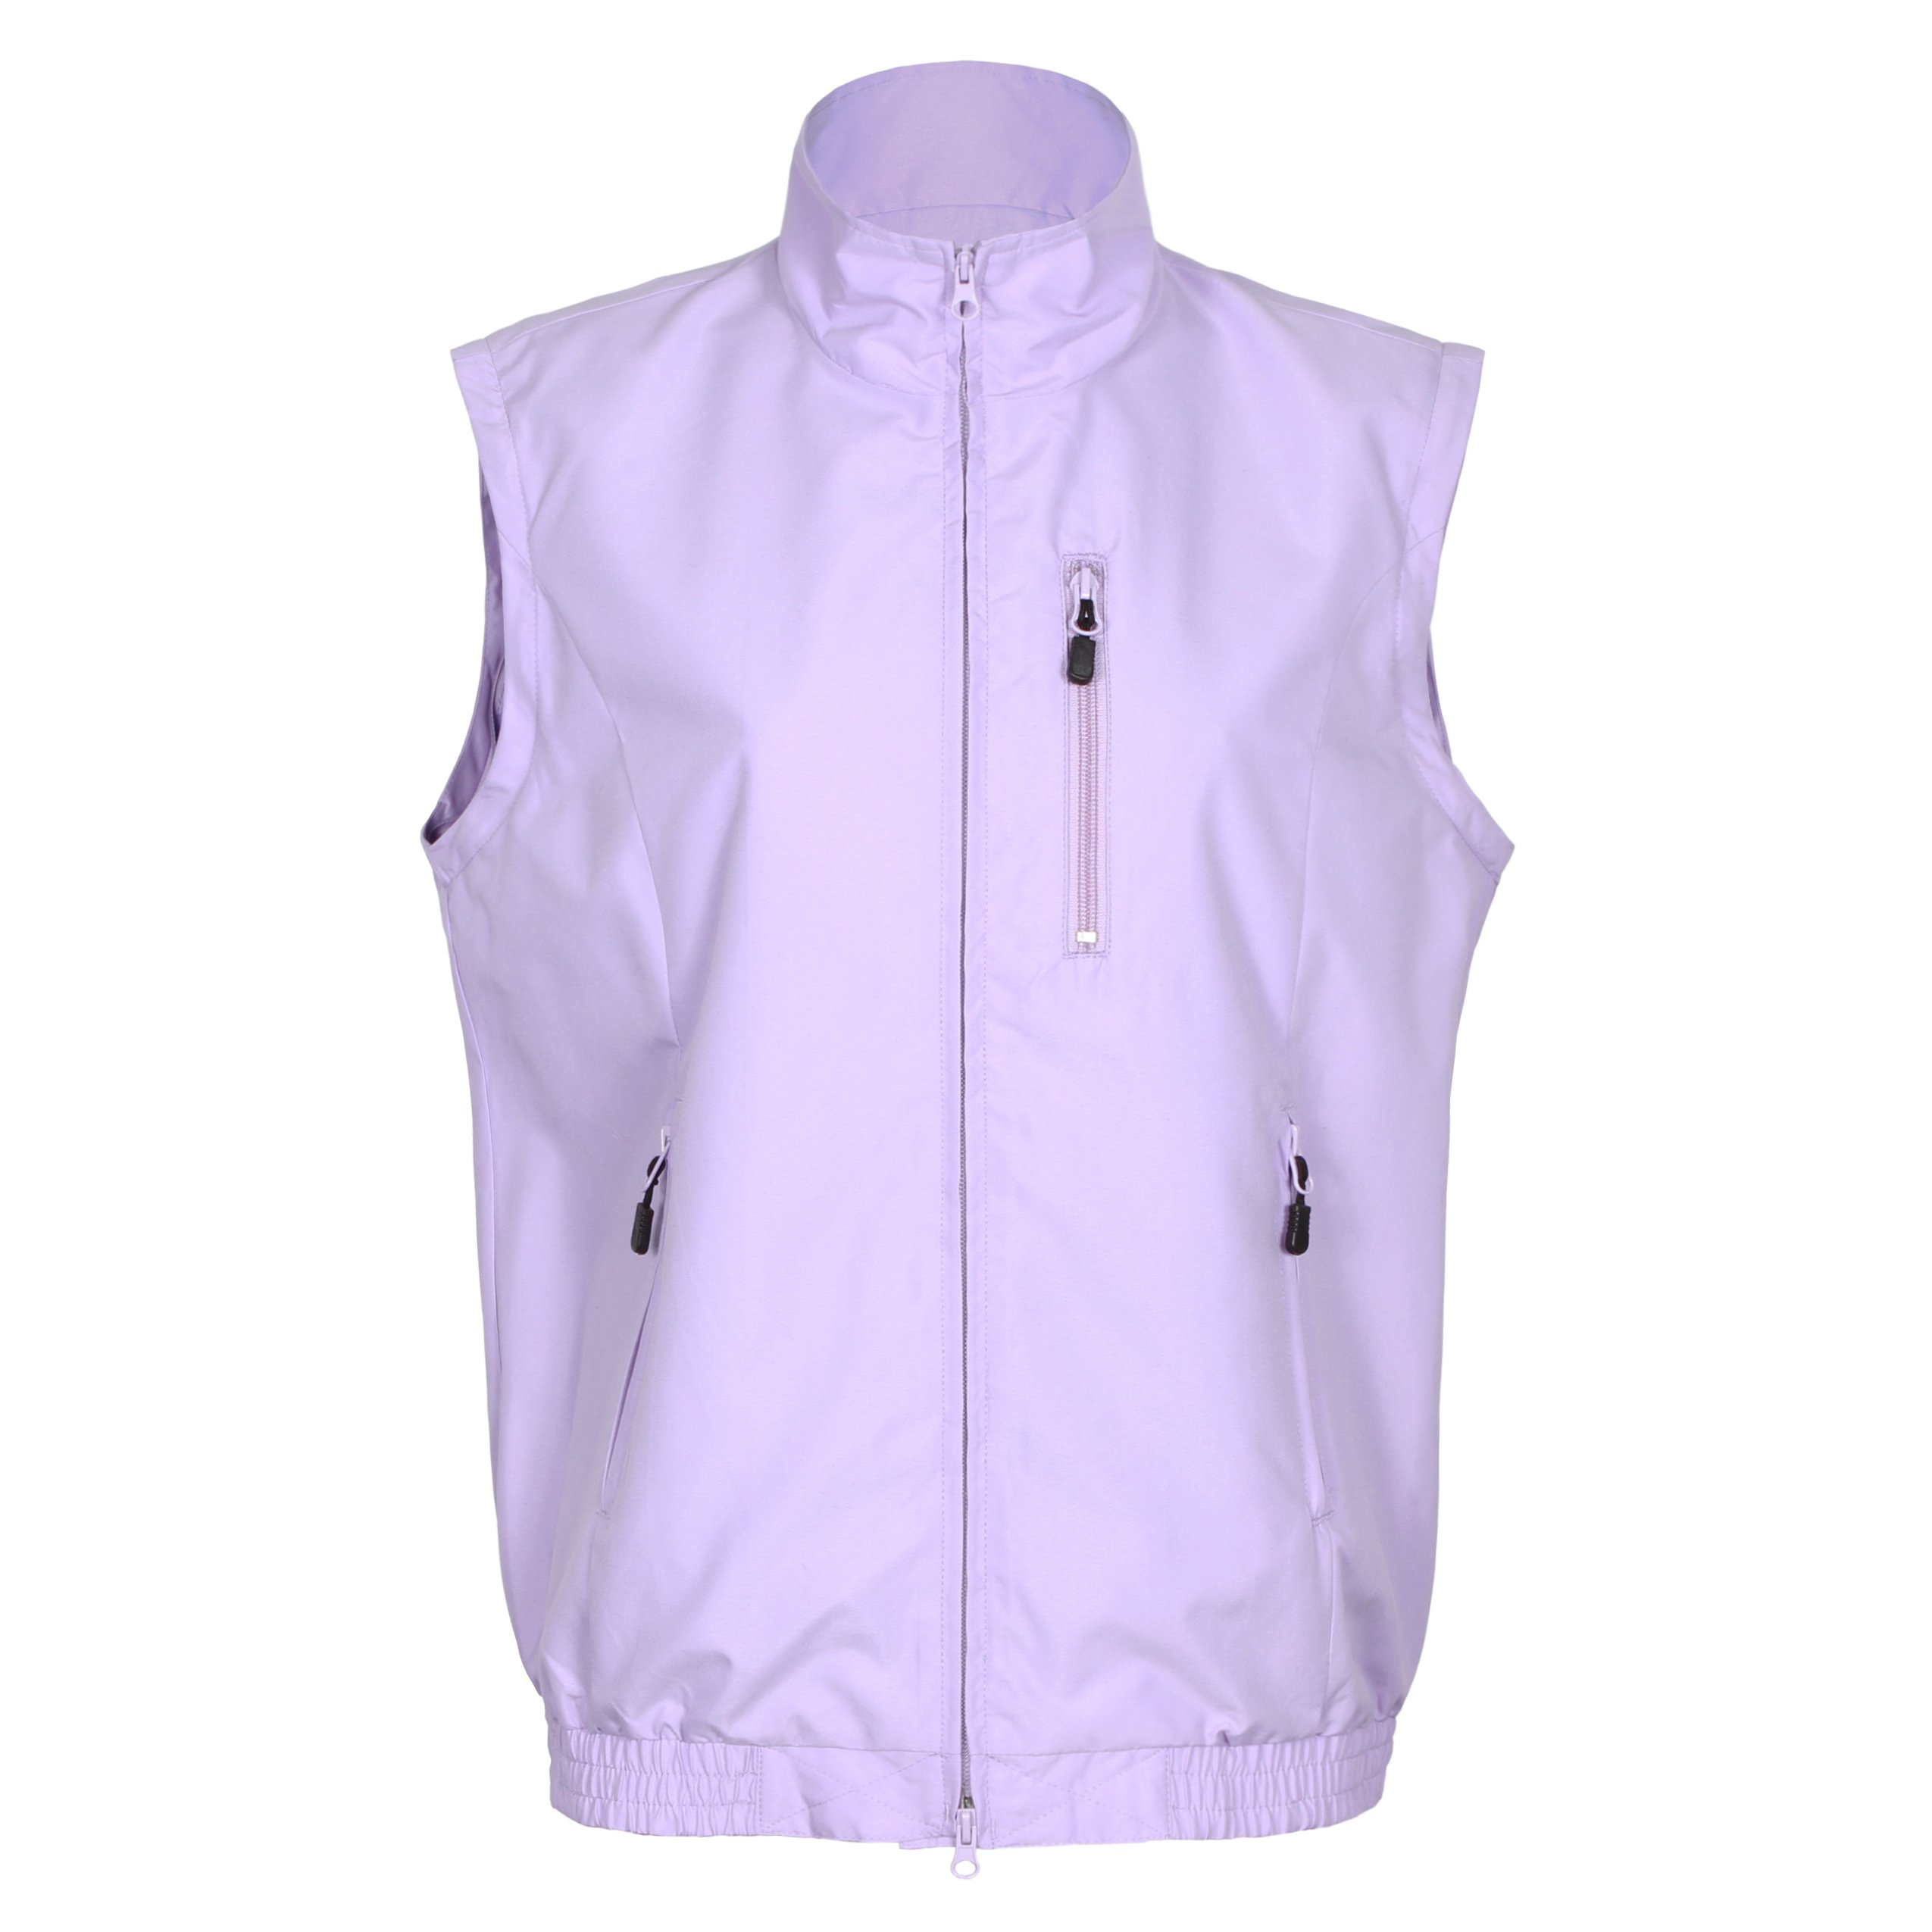 Tres Bien Golf Women's 2 in 1 Convertible Jacket / Vest (Medium, Lilac) by Tres Bien Golf (Image #2)